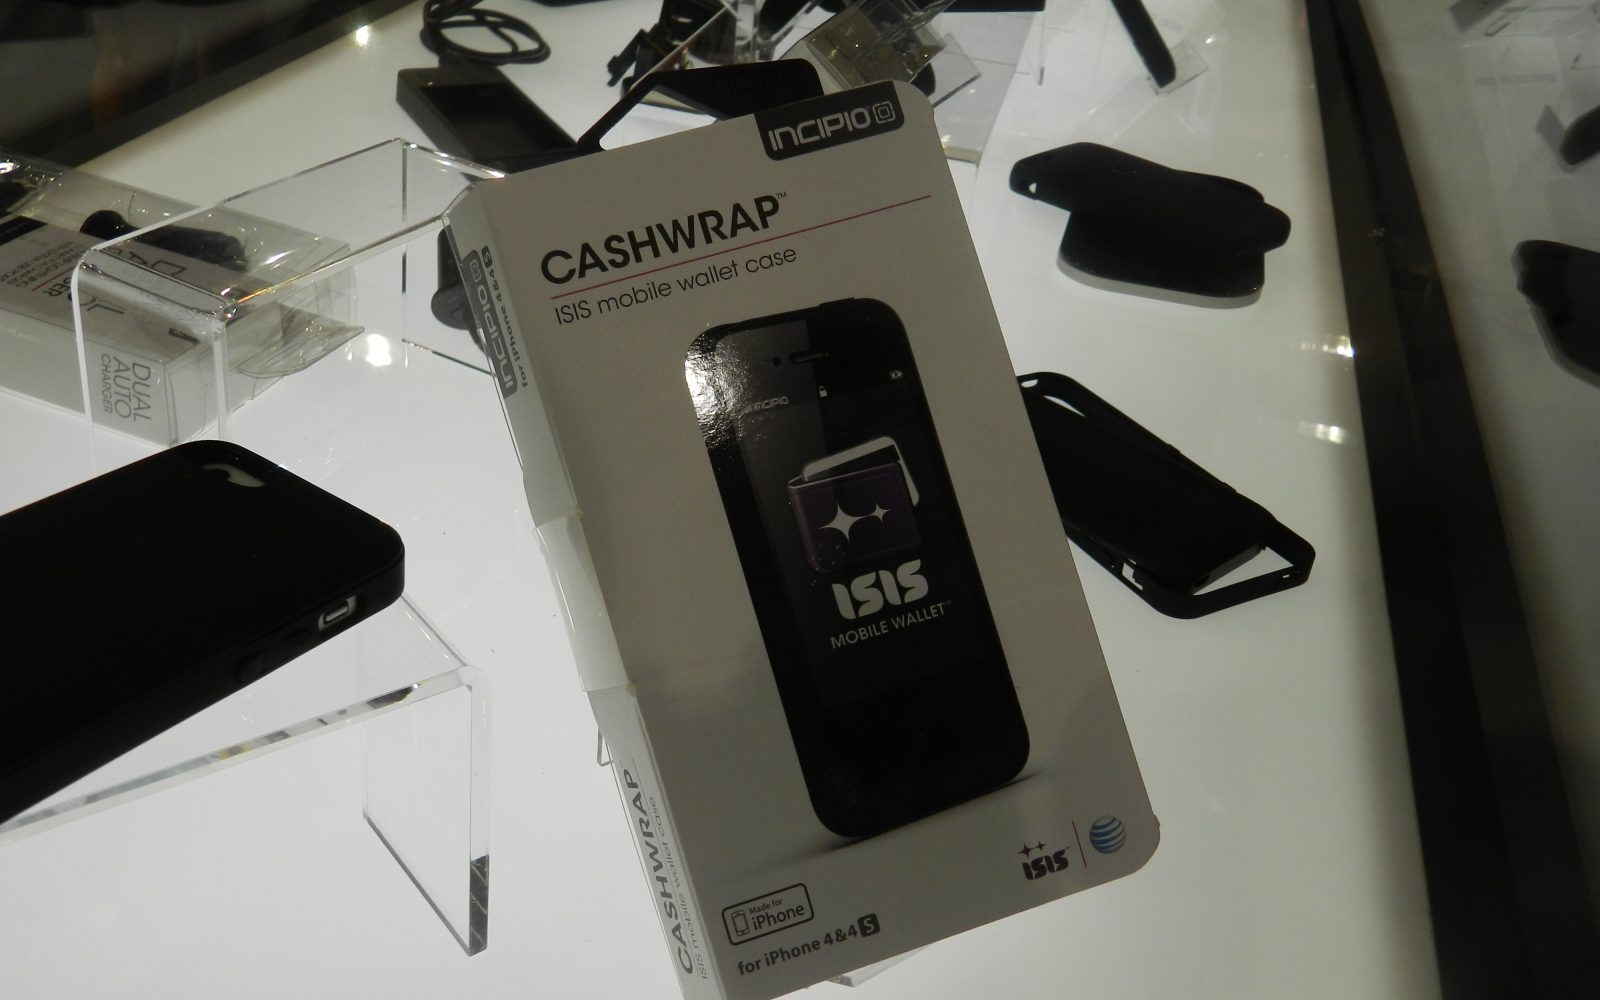 Incipio & AT&T finally launch NFC-enabled Cashwrap iPhone case for ISIS payments